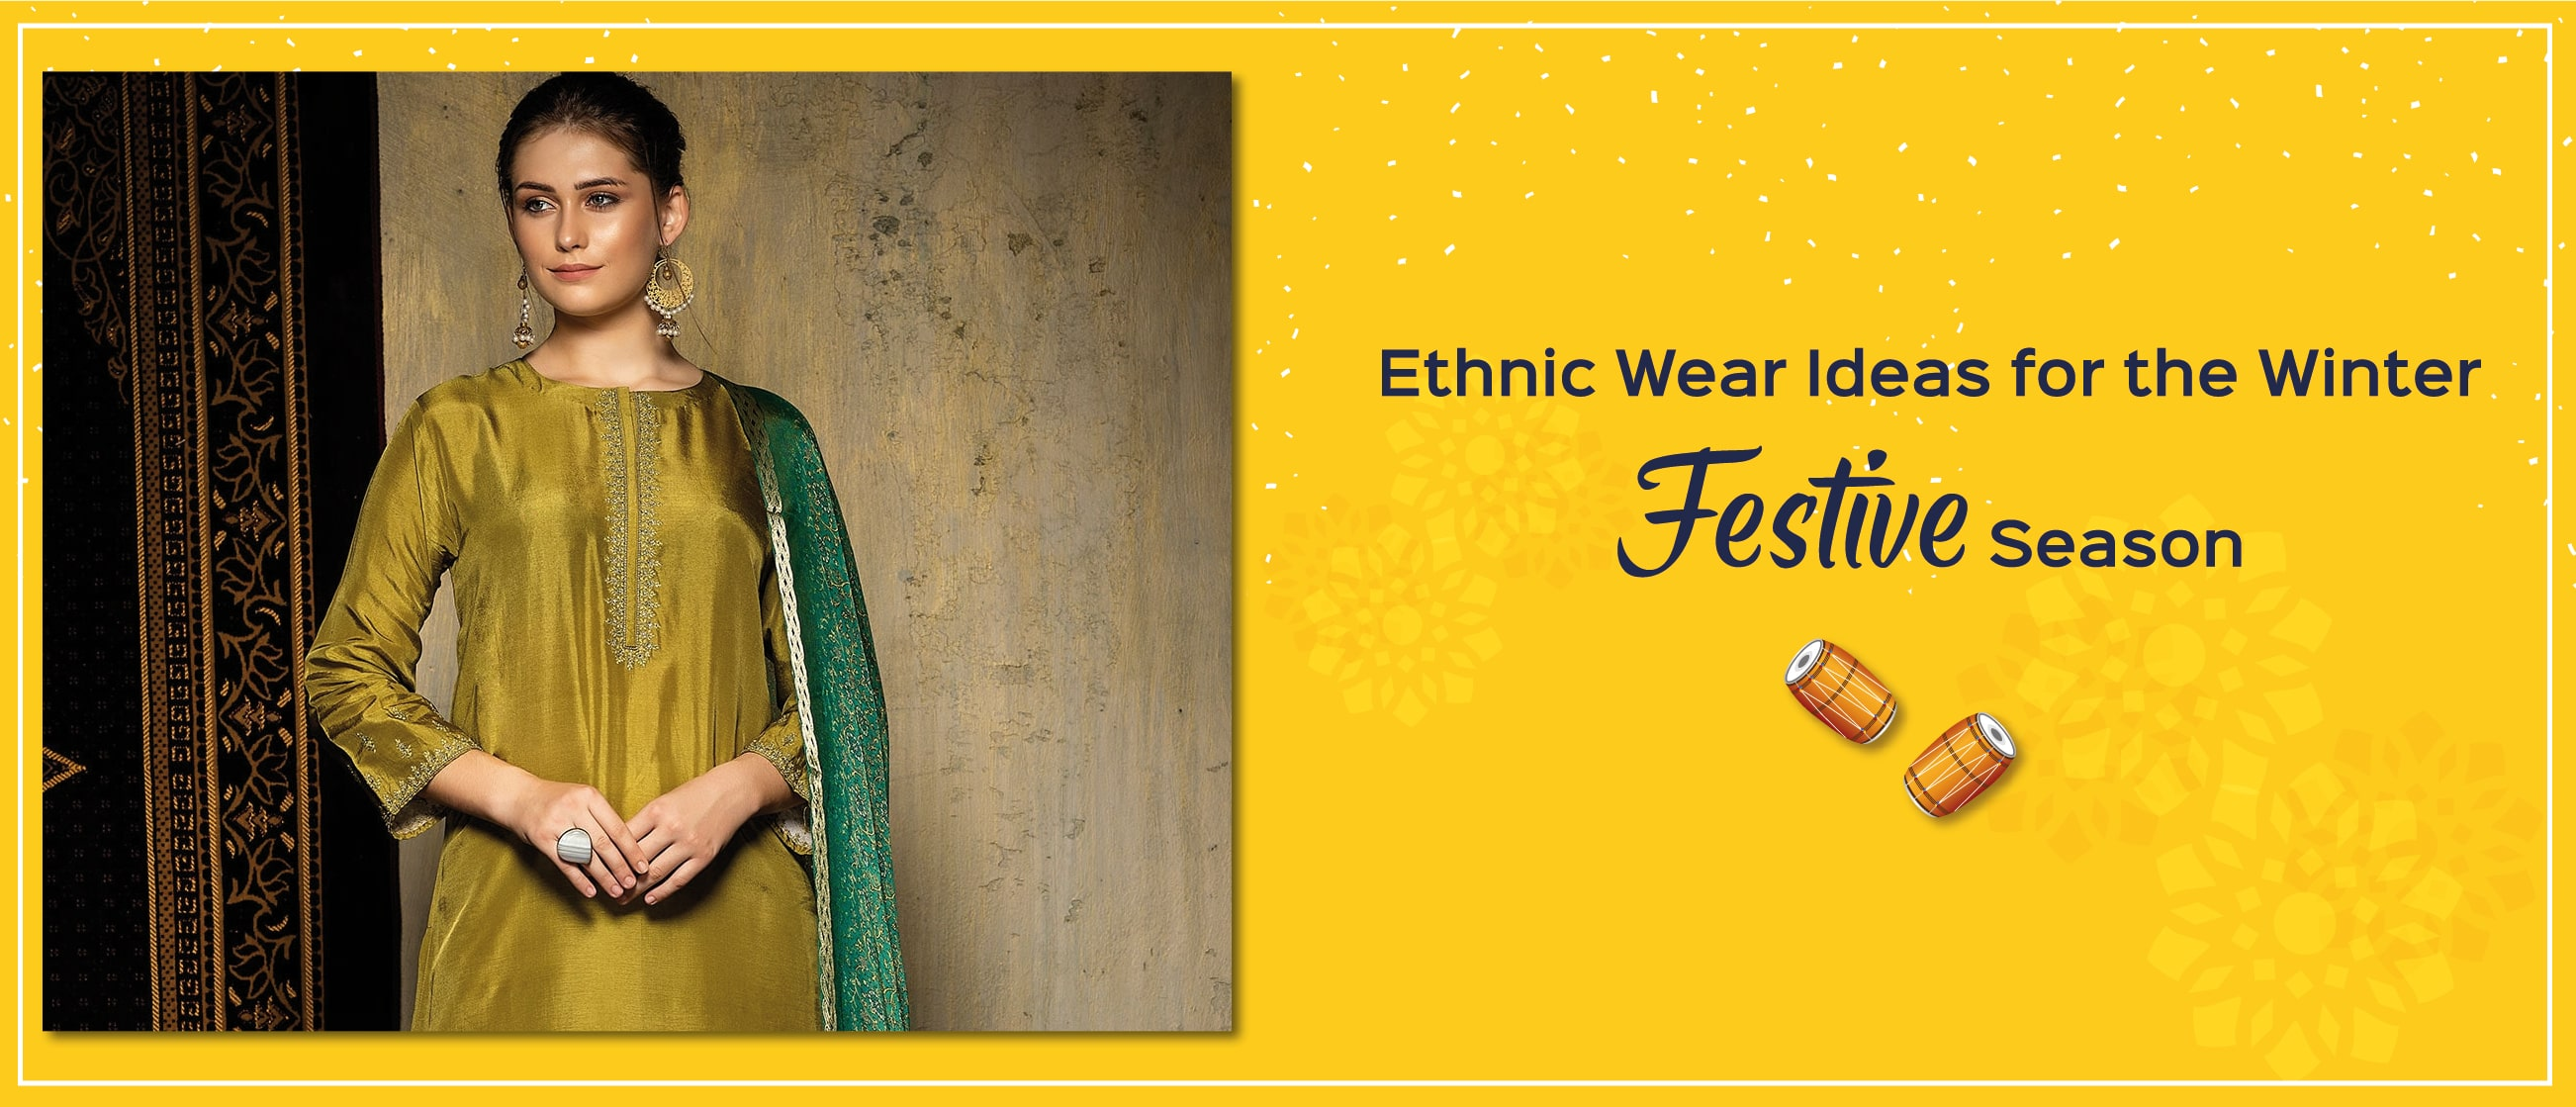 Ethnic Wear Ideas for the Winter Festive Season